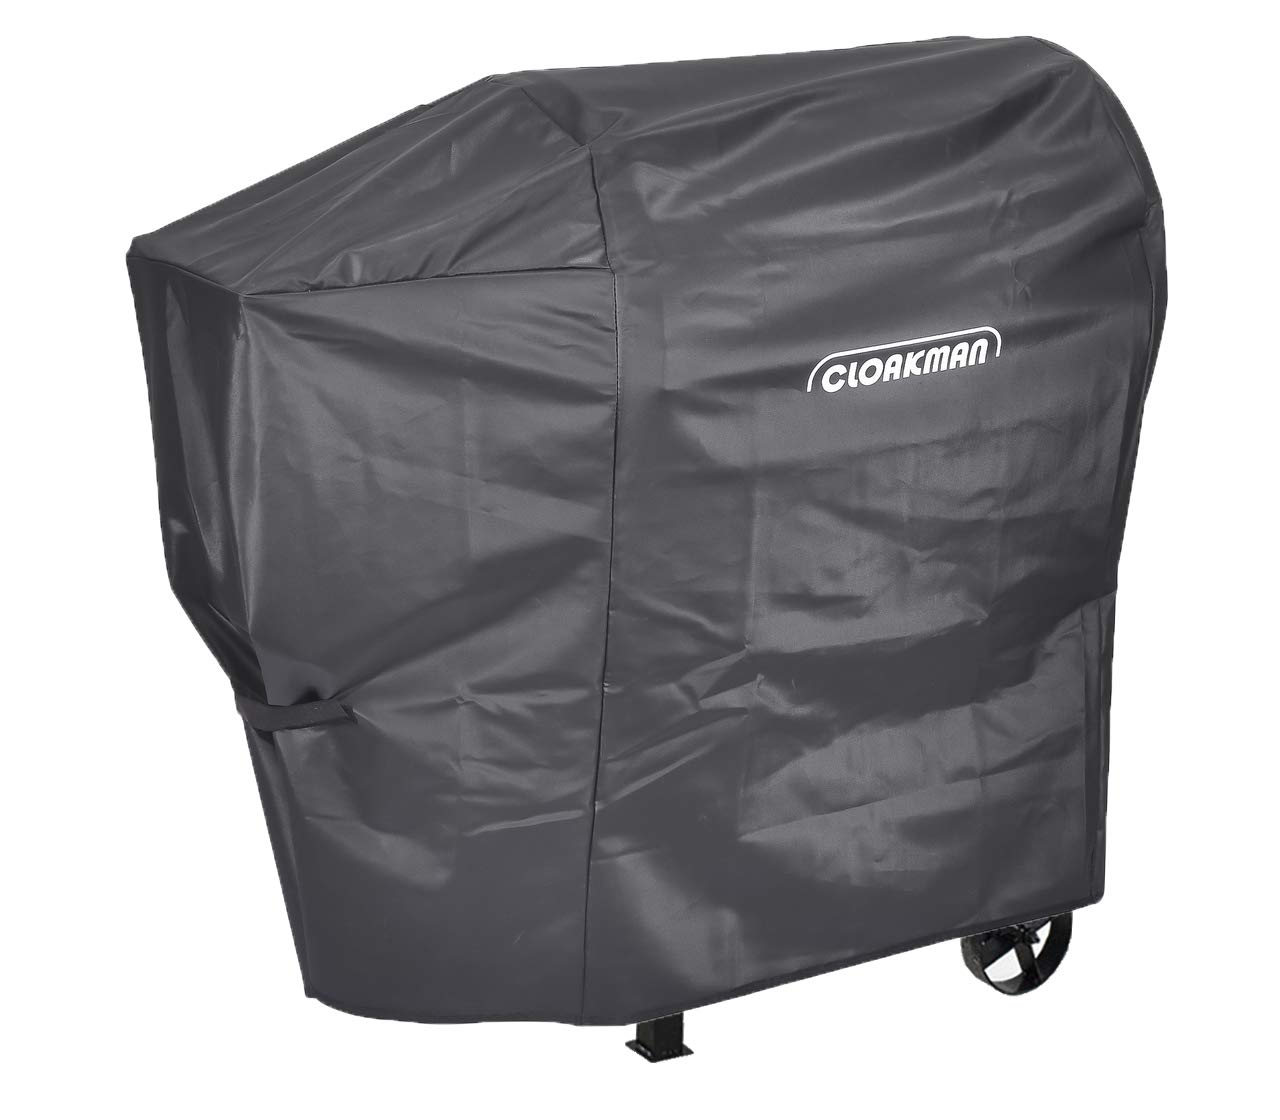 Cloakman Premium Heavy-Duty Grill Cover fits Pit Boss 700FB/71700 Wood Pellet Smoker Grills by Cloakman